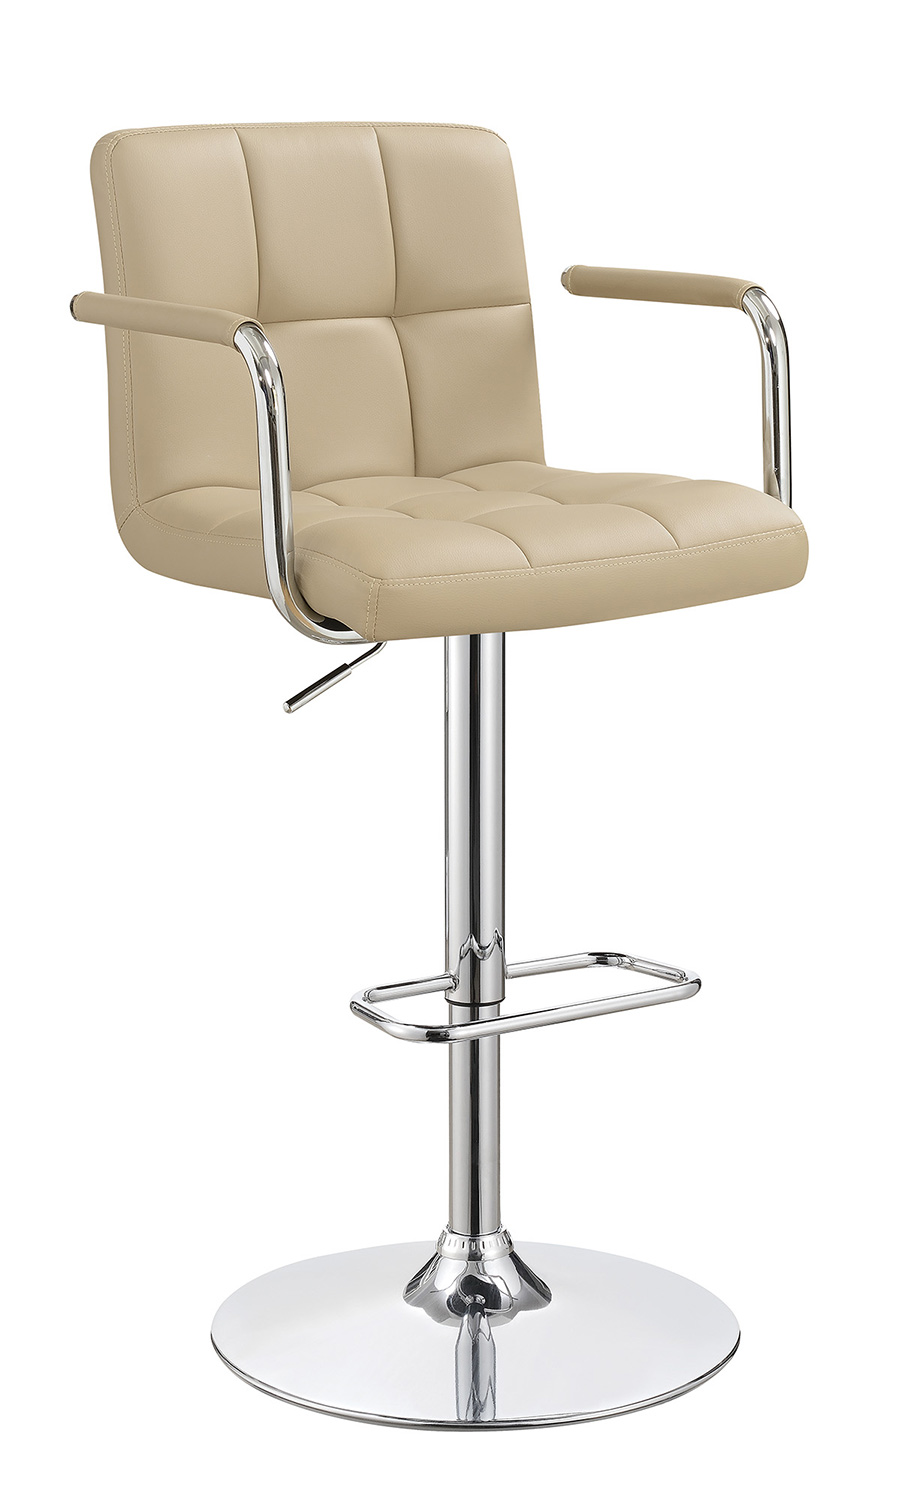 Coaster 121106 Adjustable Bar Stool - Beige/Chrome